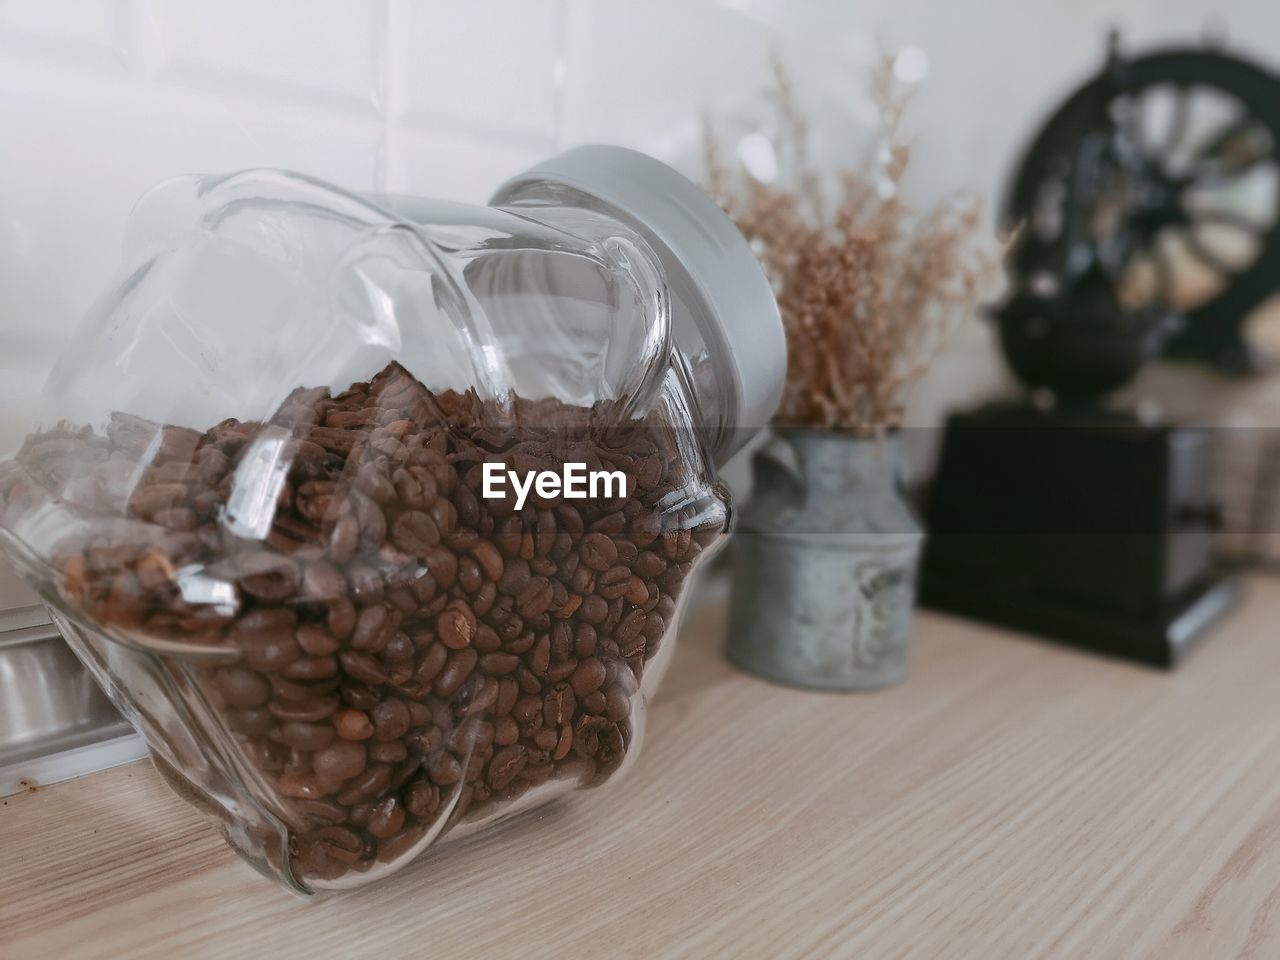 table, indoors, container, food and drink, still life, food, jar, freshness, roasted coffee bean, no people, close-up, glass - material, coffee, coffee - drink, transparent, brown, focus on foreground, large group of objects, bag, abundance, plastic bag, temptation